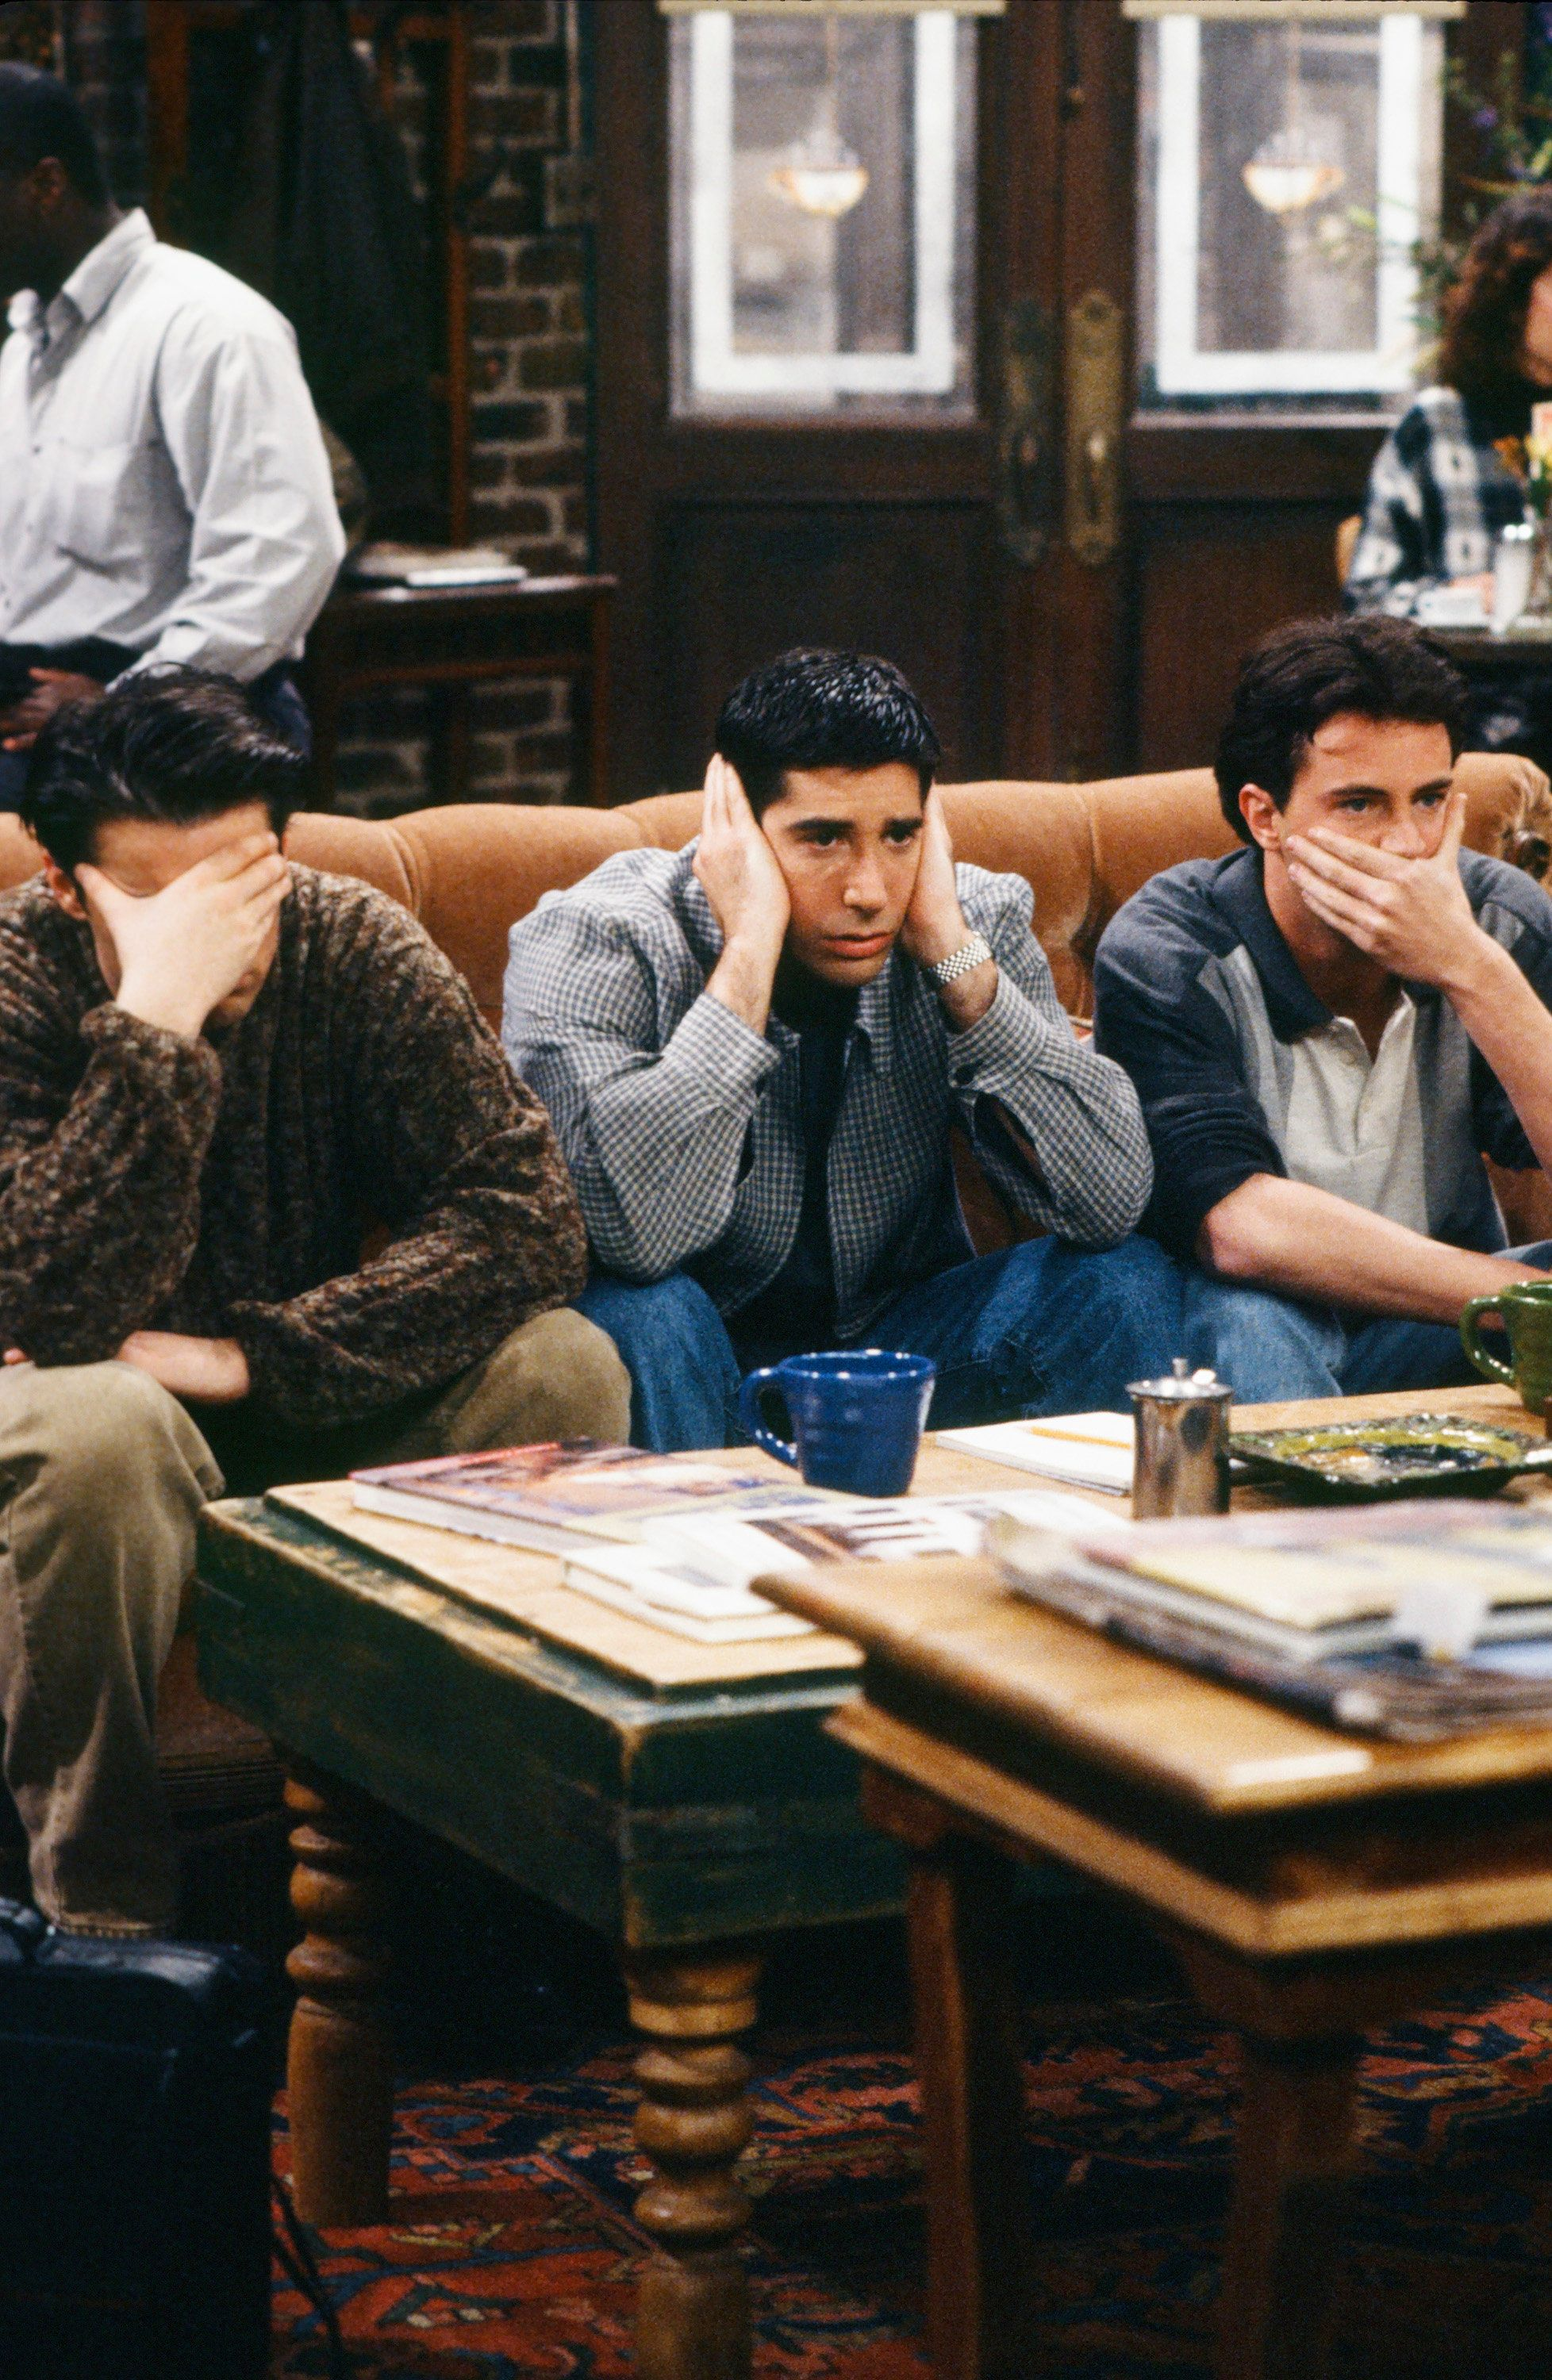 FRIENDS -- 'The One with the Fake Monica' Episode 121 -- Pictured: (l-r) Matt LeBlanc as Joey Tribbiani, David Schwimmer as Ross Geller, Matthew Perry as Chandler Bing -- (Photo by: Alice S. Hall/NBC/NBCU Photo Bank via Getty Images)